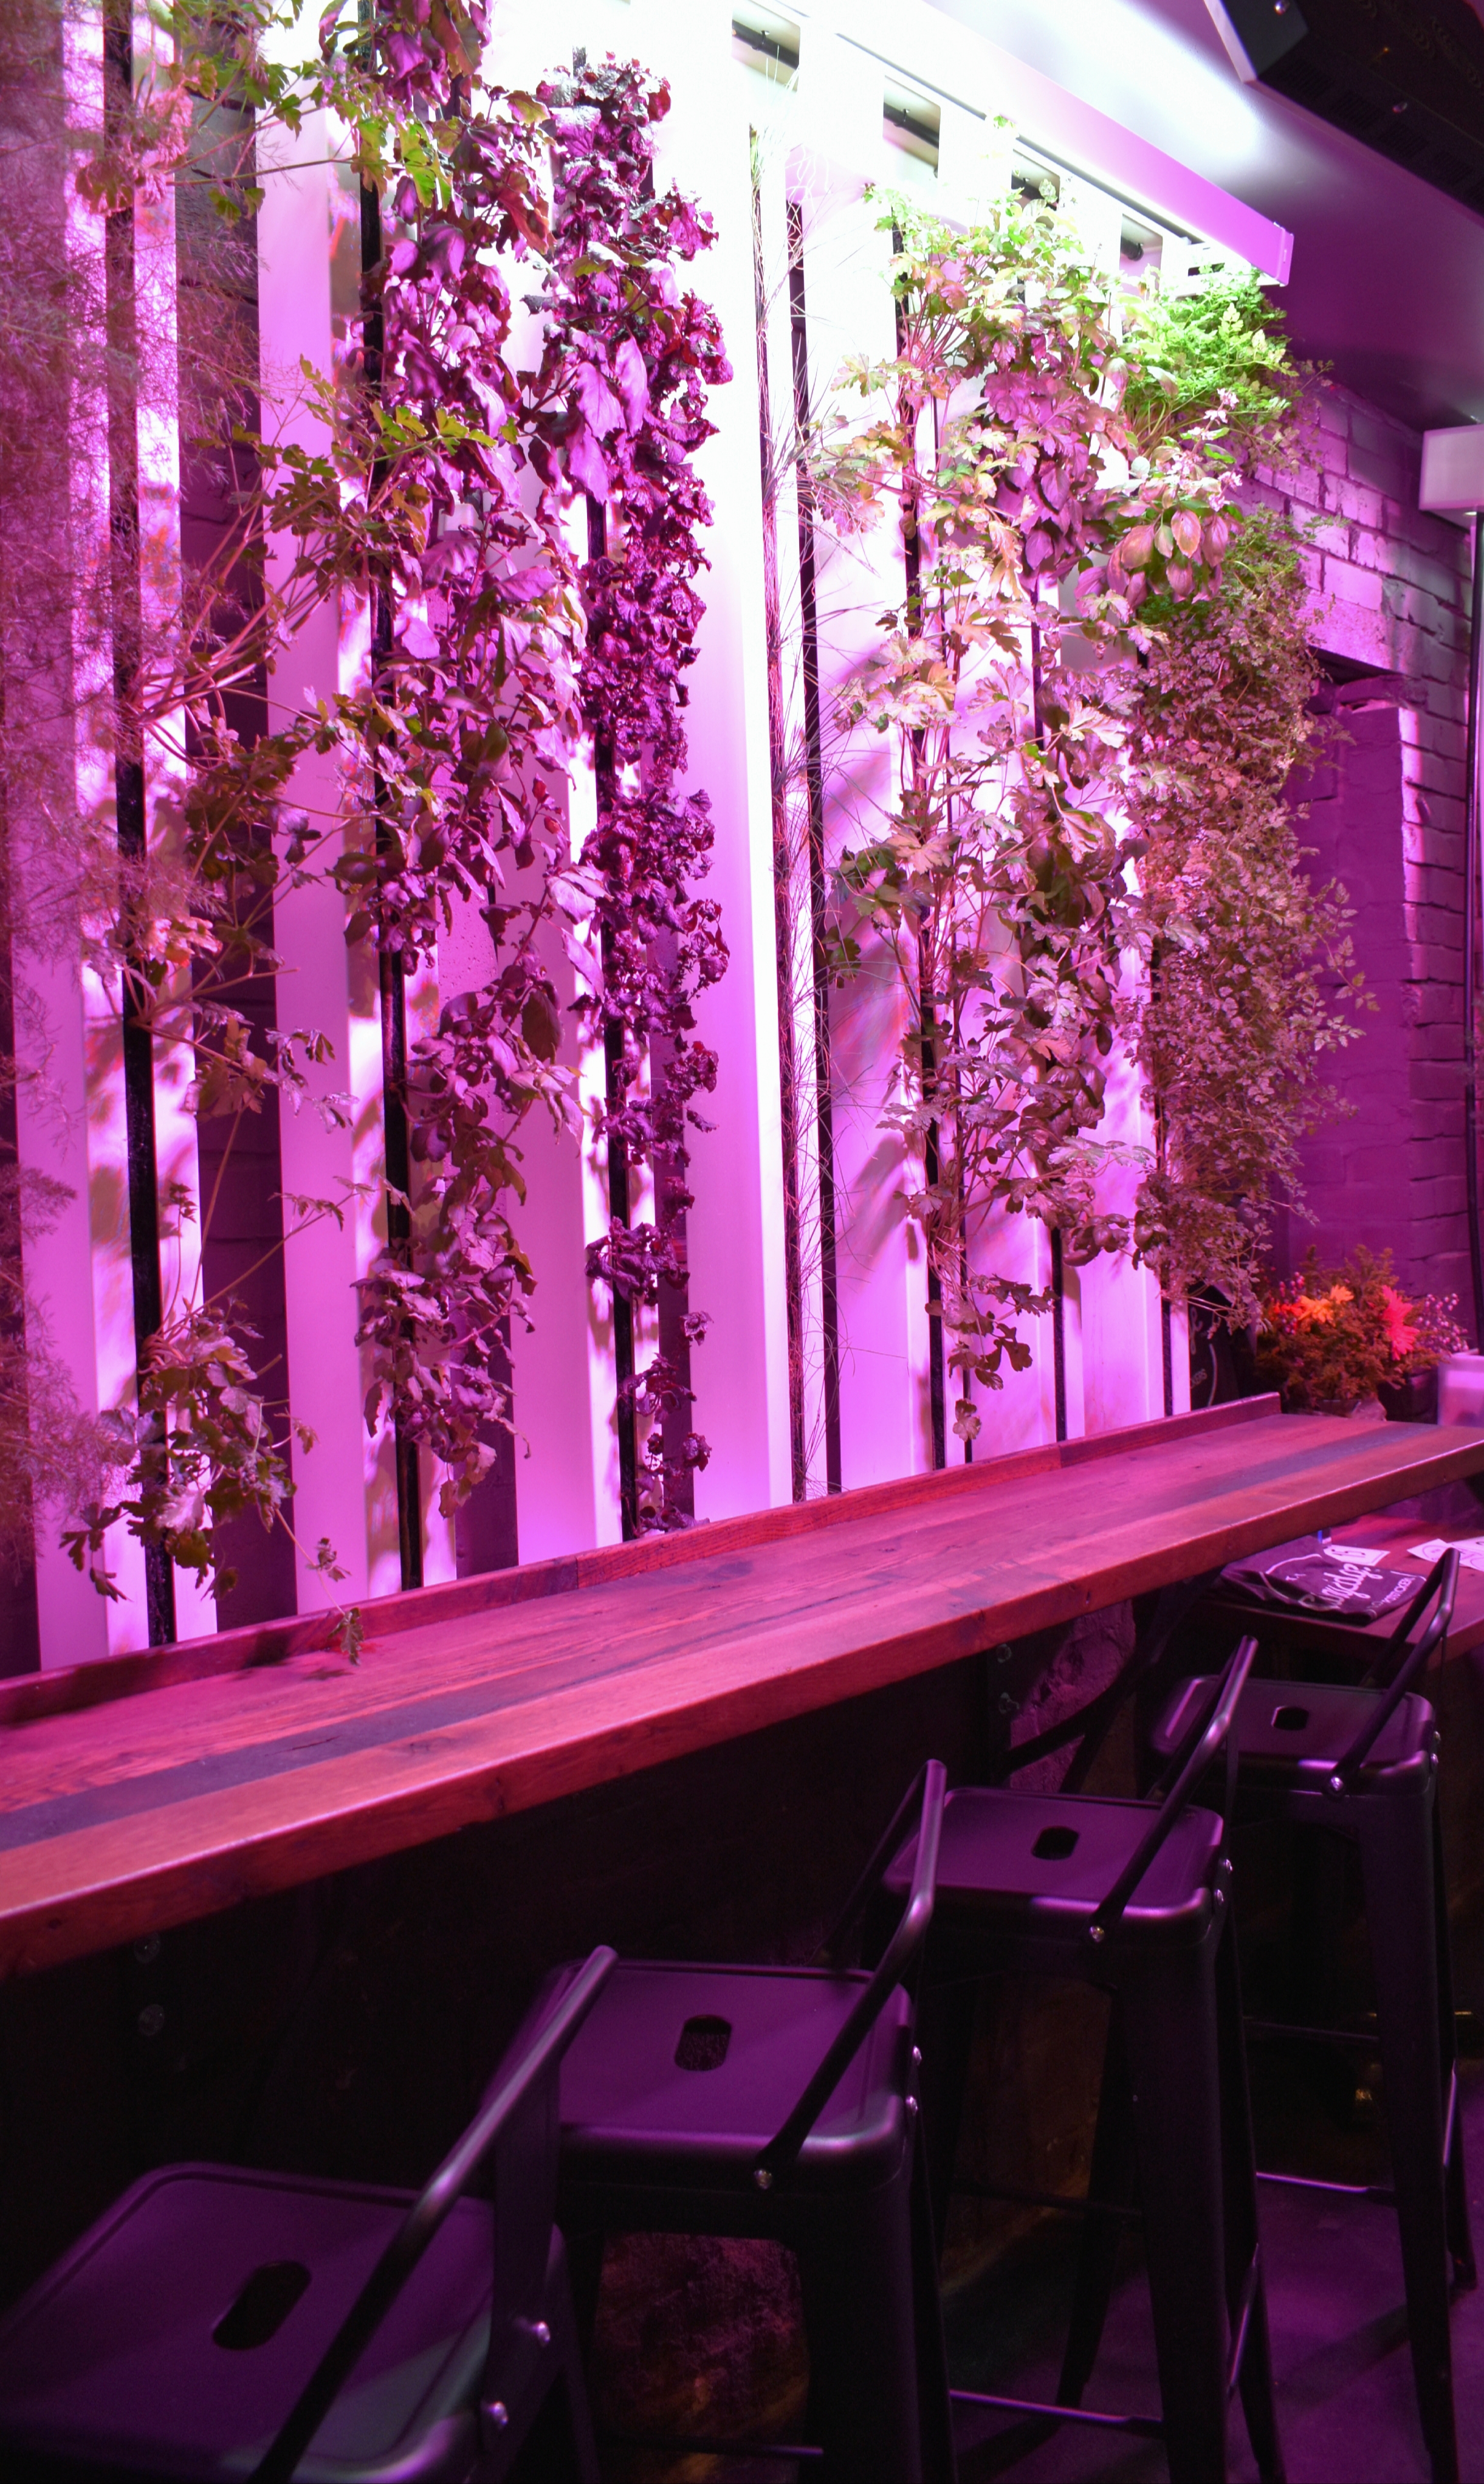 uprooted-traveler-crispy-edge-vegan-plant-based-st-louis-vertical-garden